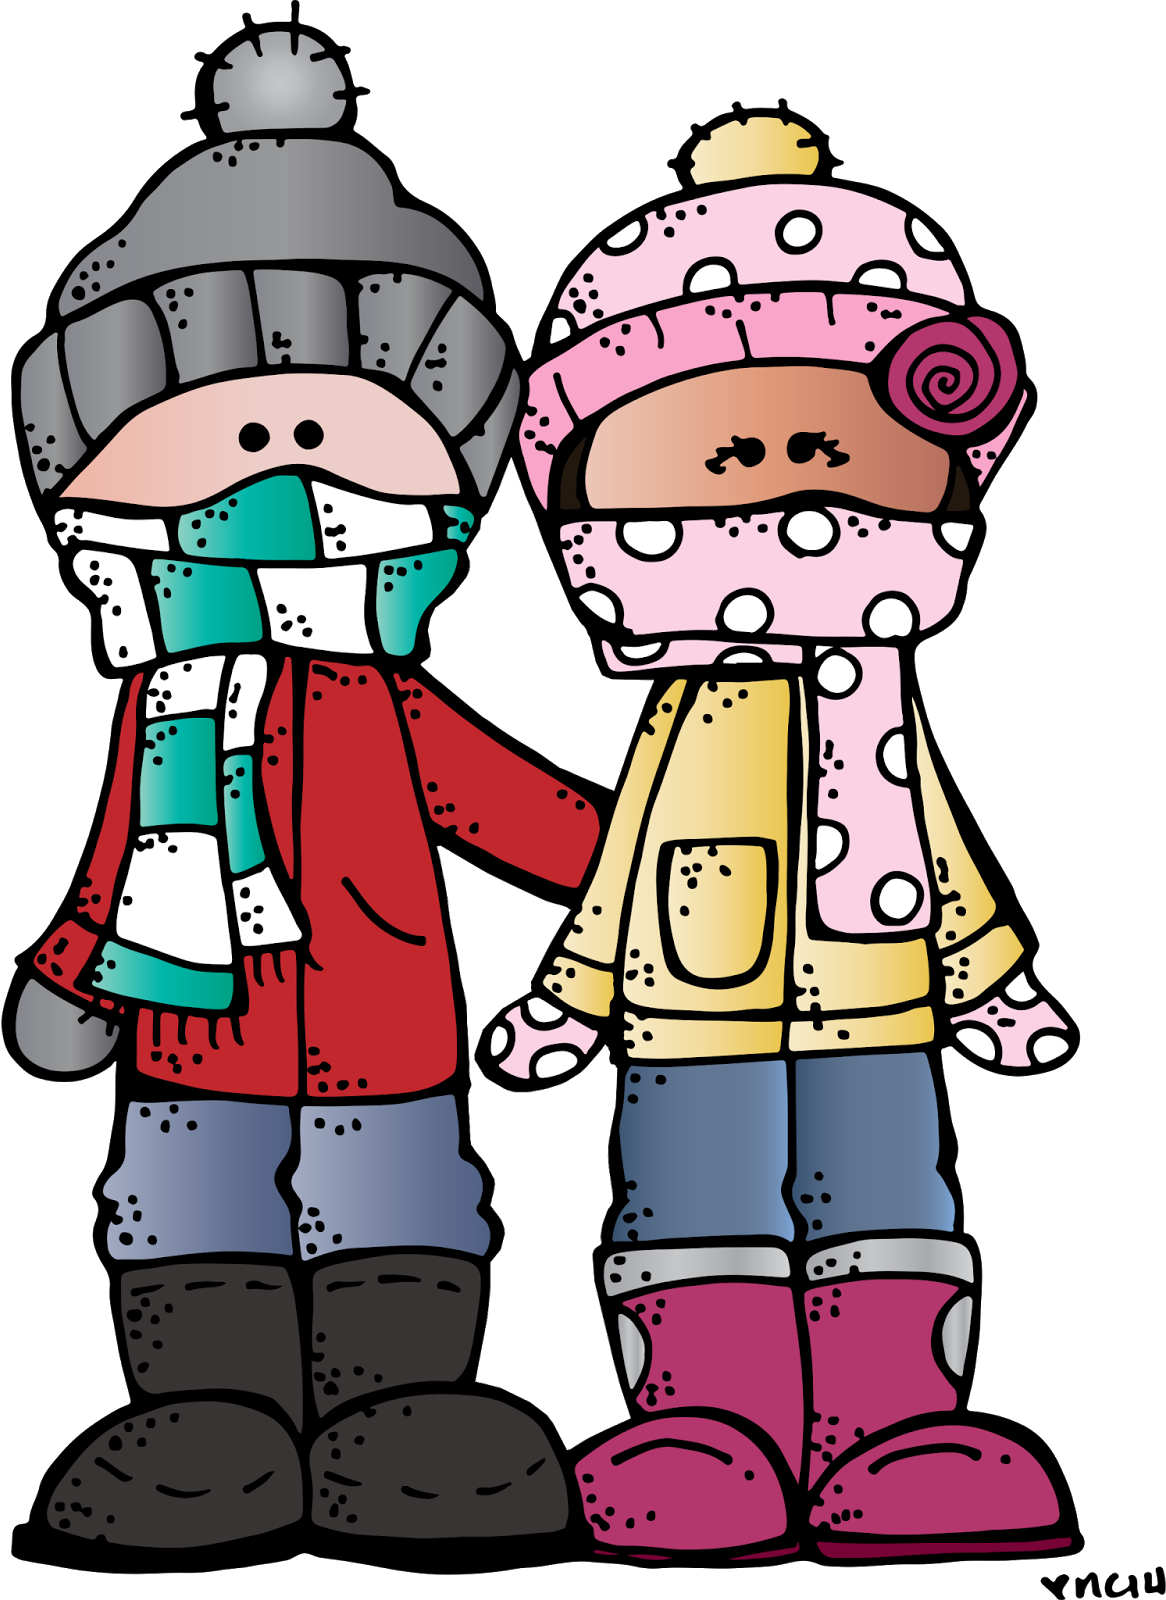 melonheadz illustrating happy winter printables clip art rh pinterest com january clip art images january clip art free images